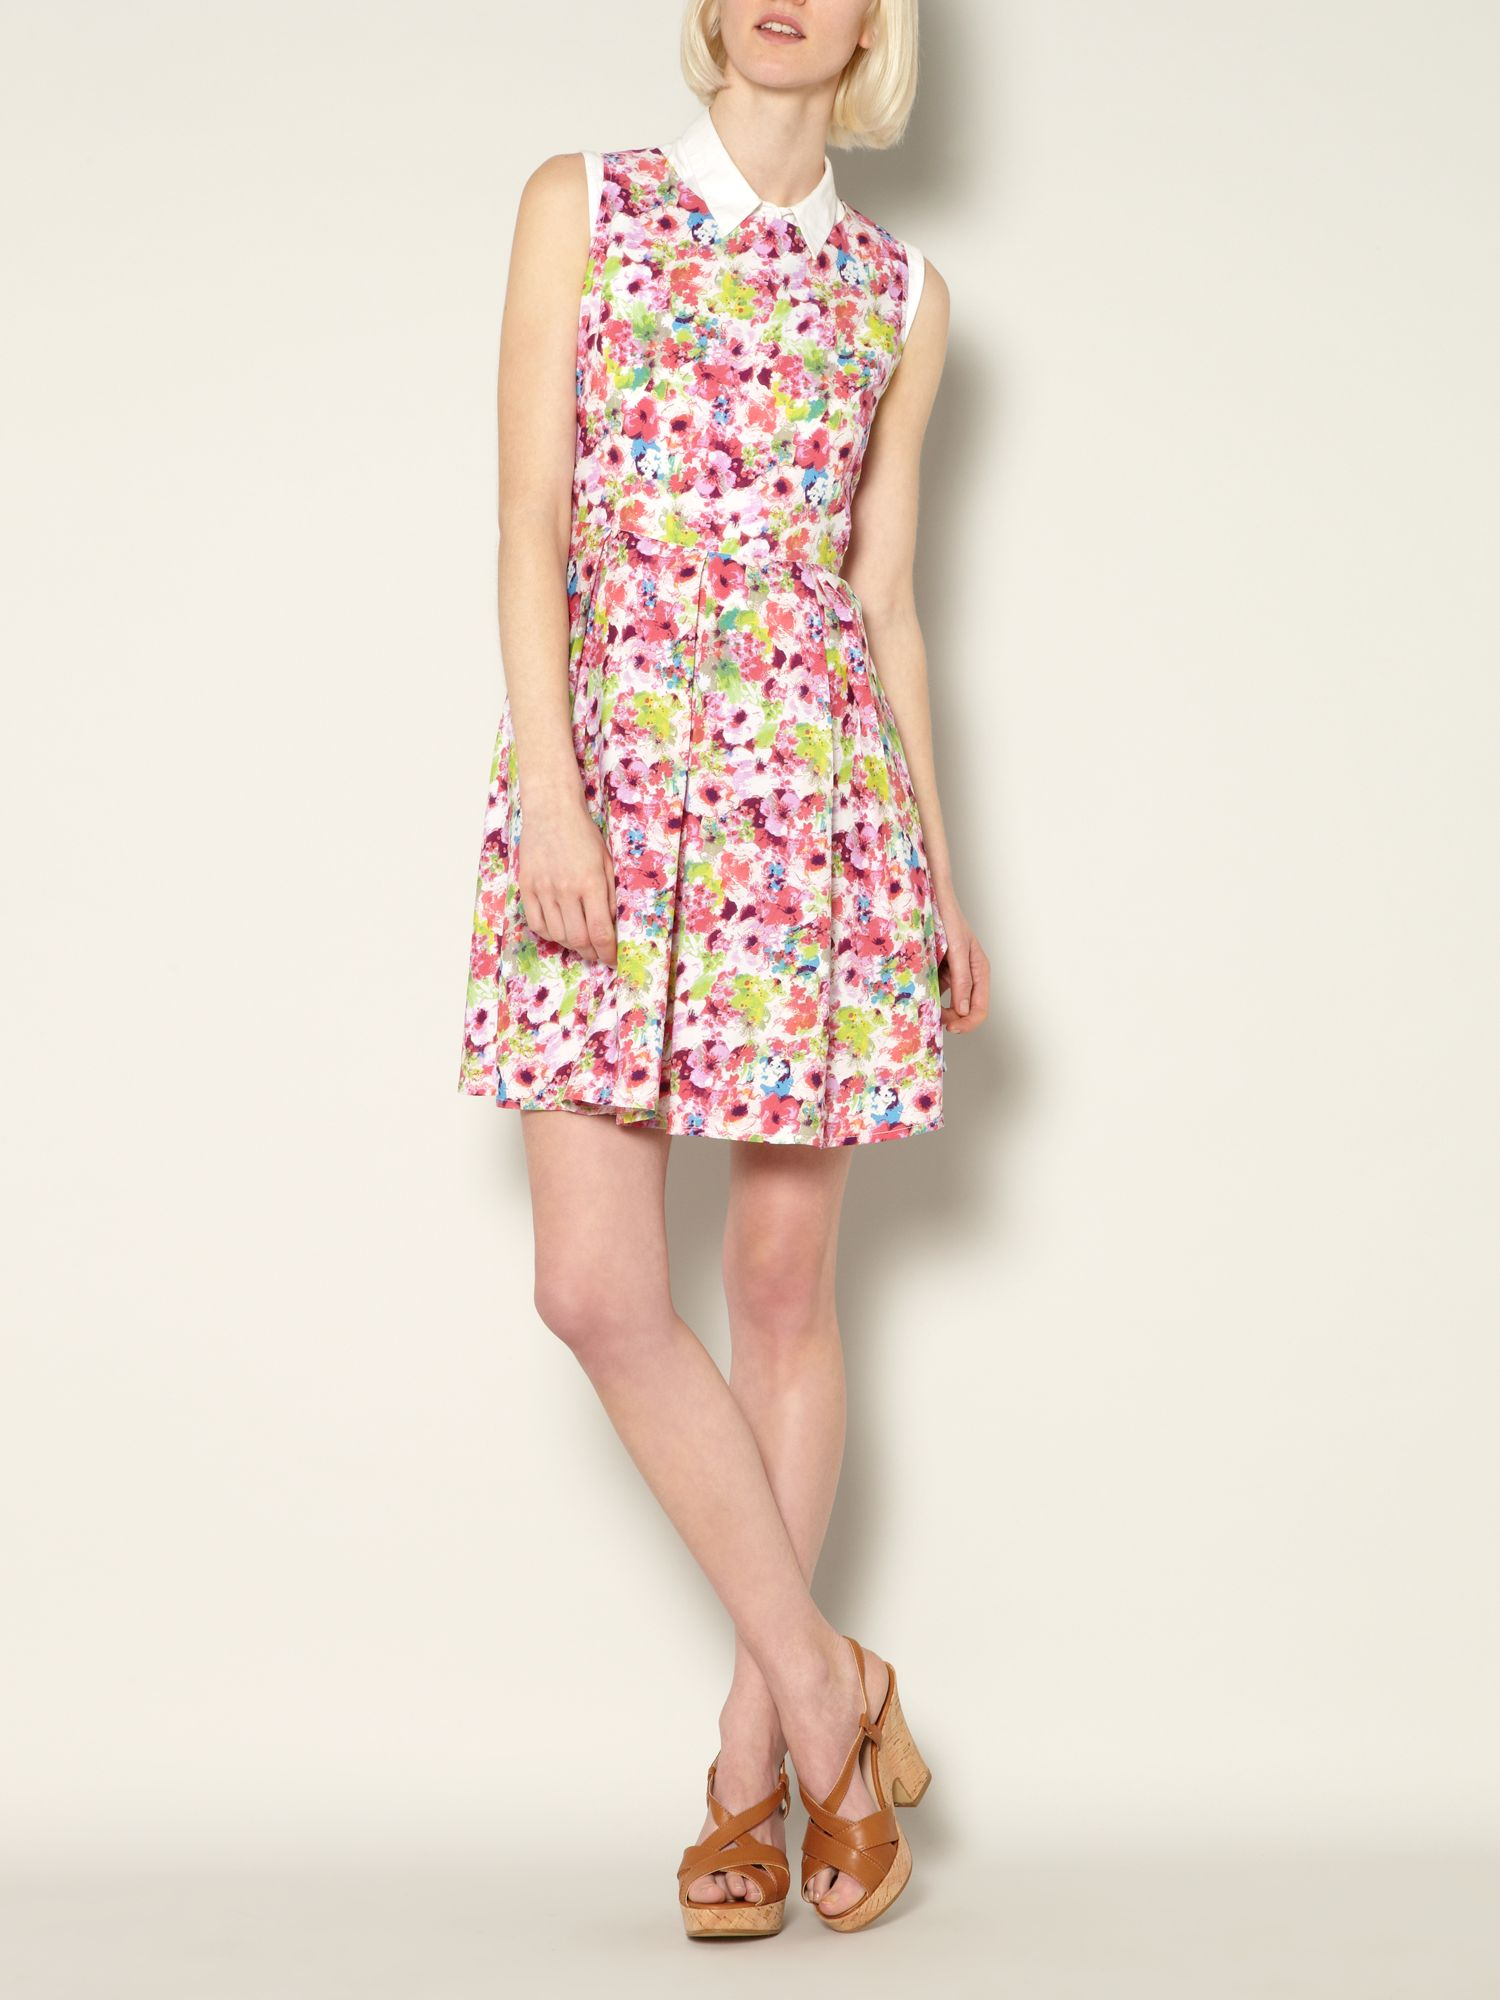 Belle blossom dress